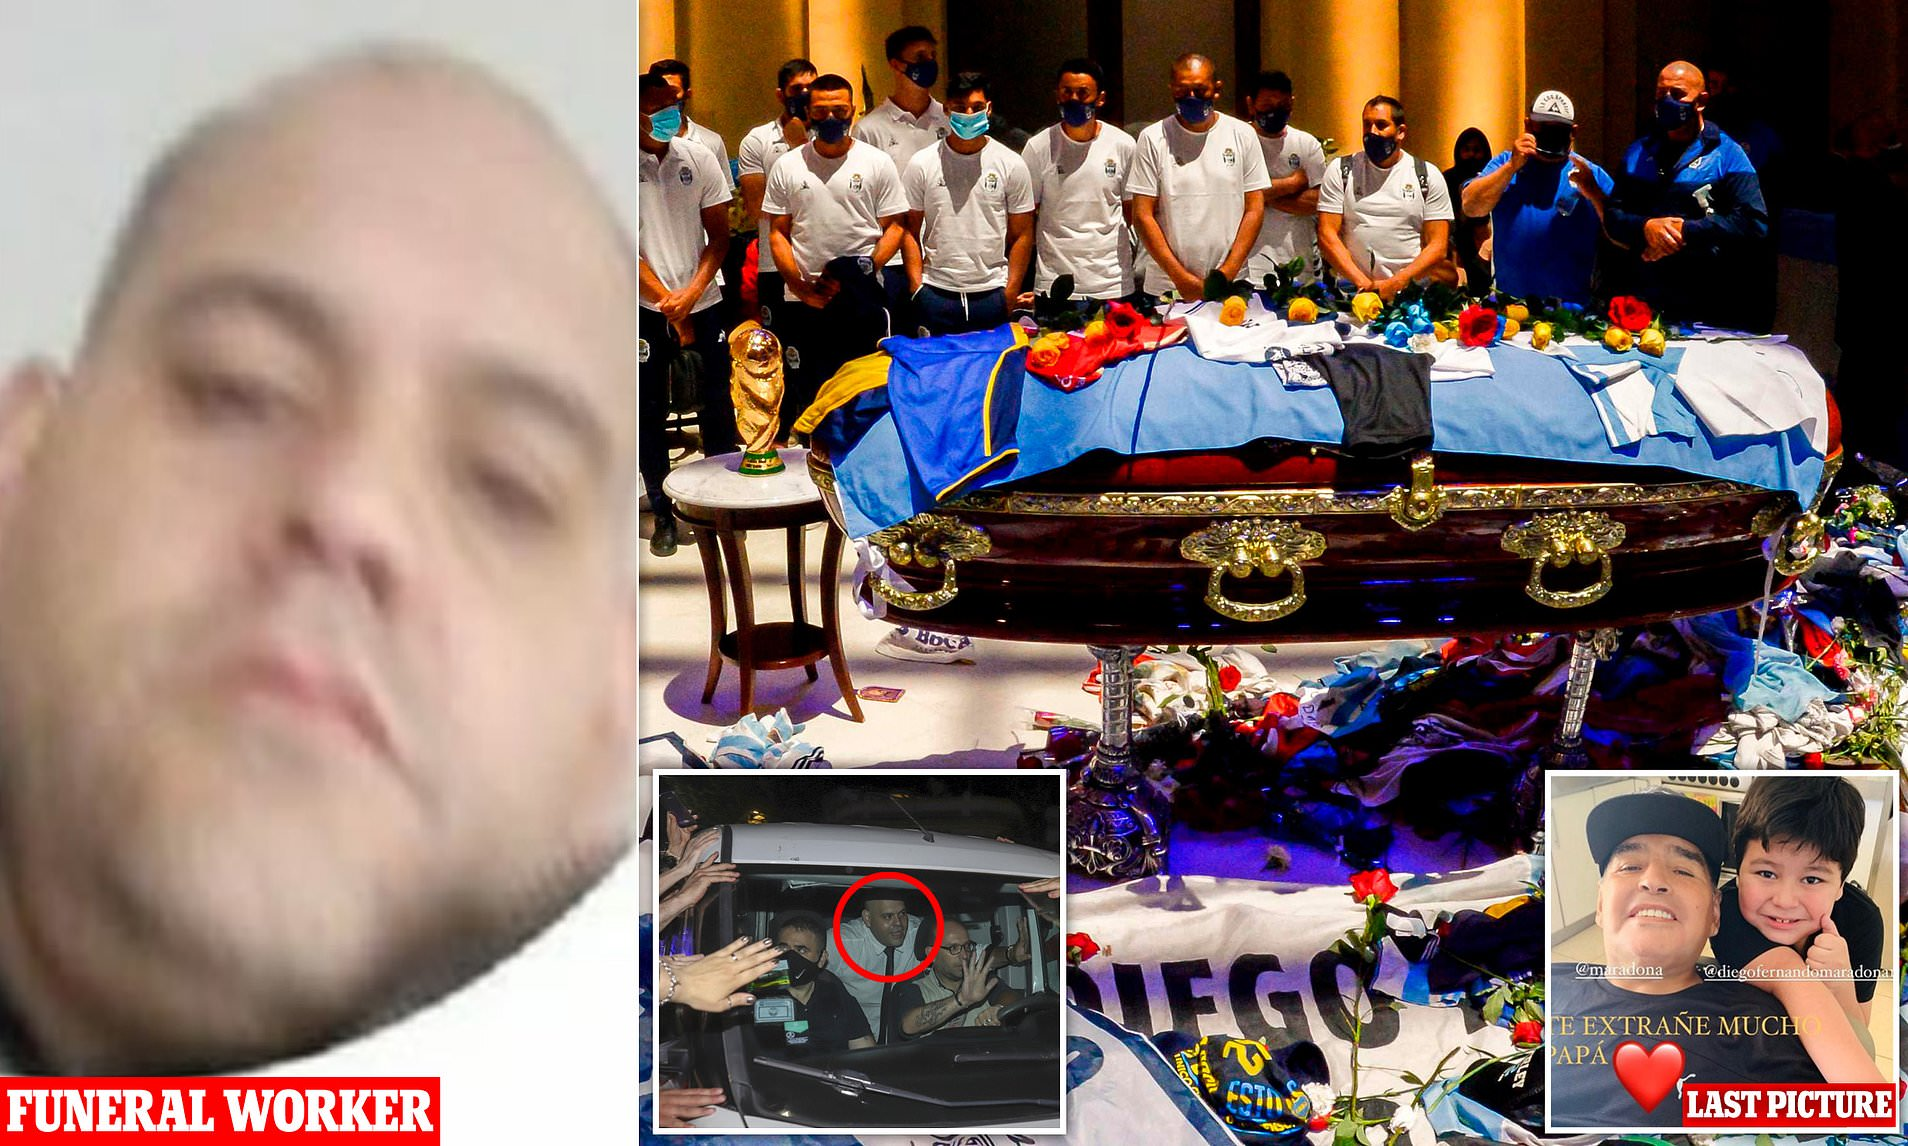 A worker at a funeral parlour has been fired after posing for a selfie with Diego Maradona's corpse. He allegedly opened up Maradona's coffin and struck a thumbs up pose.